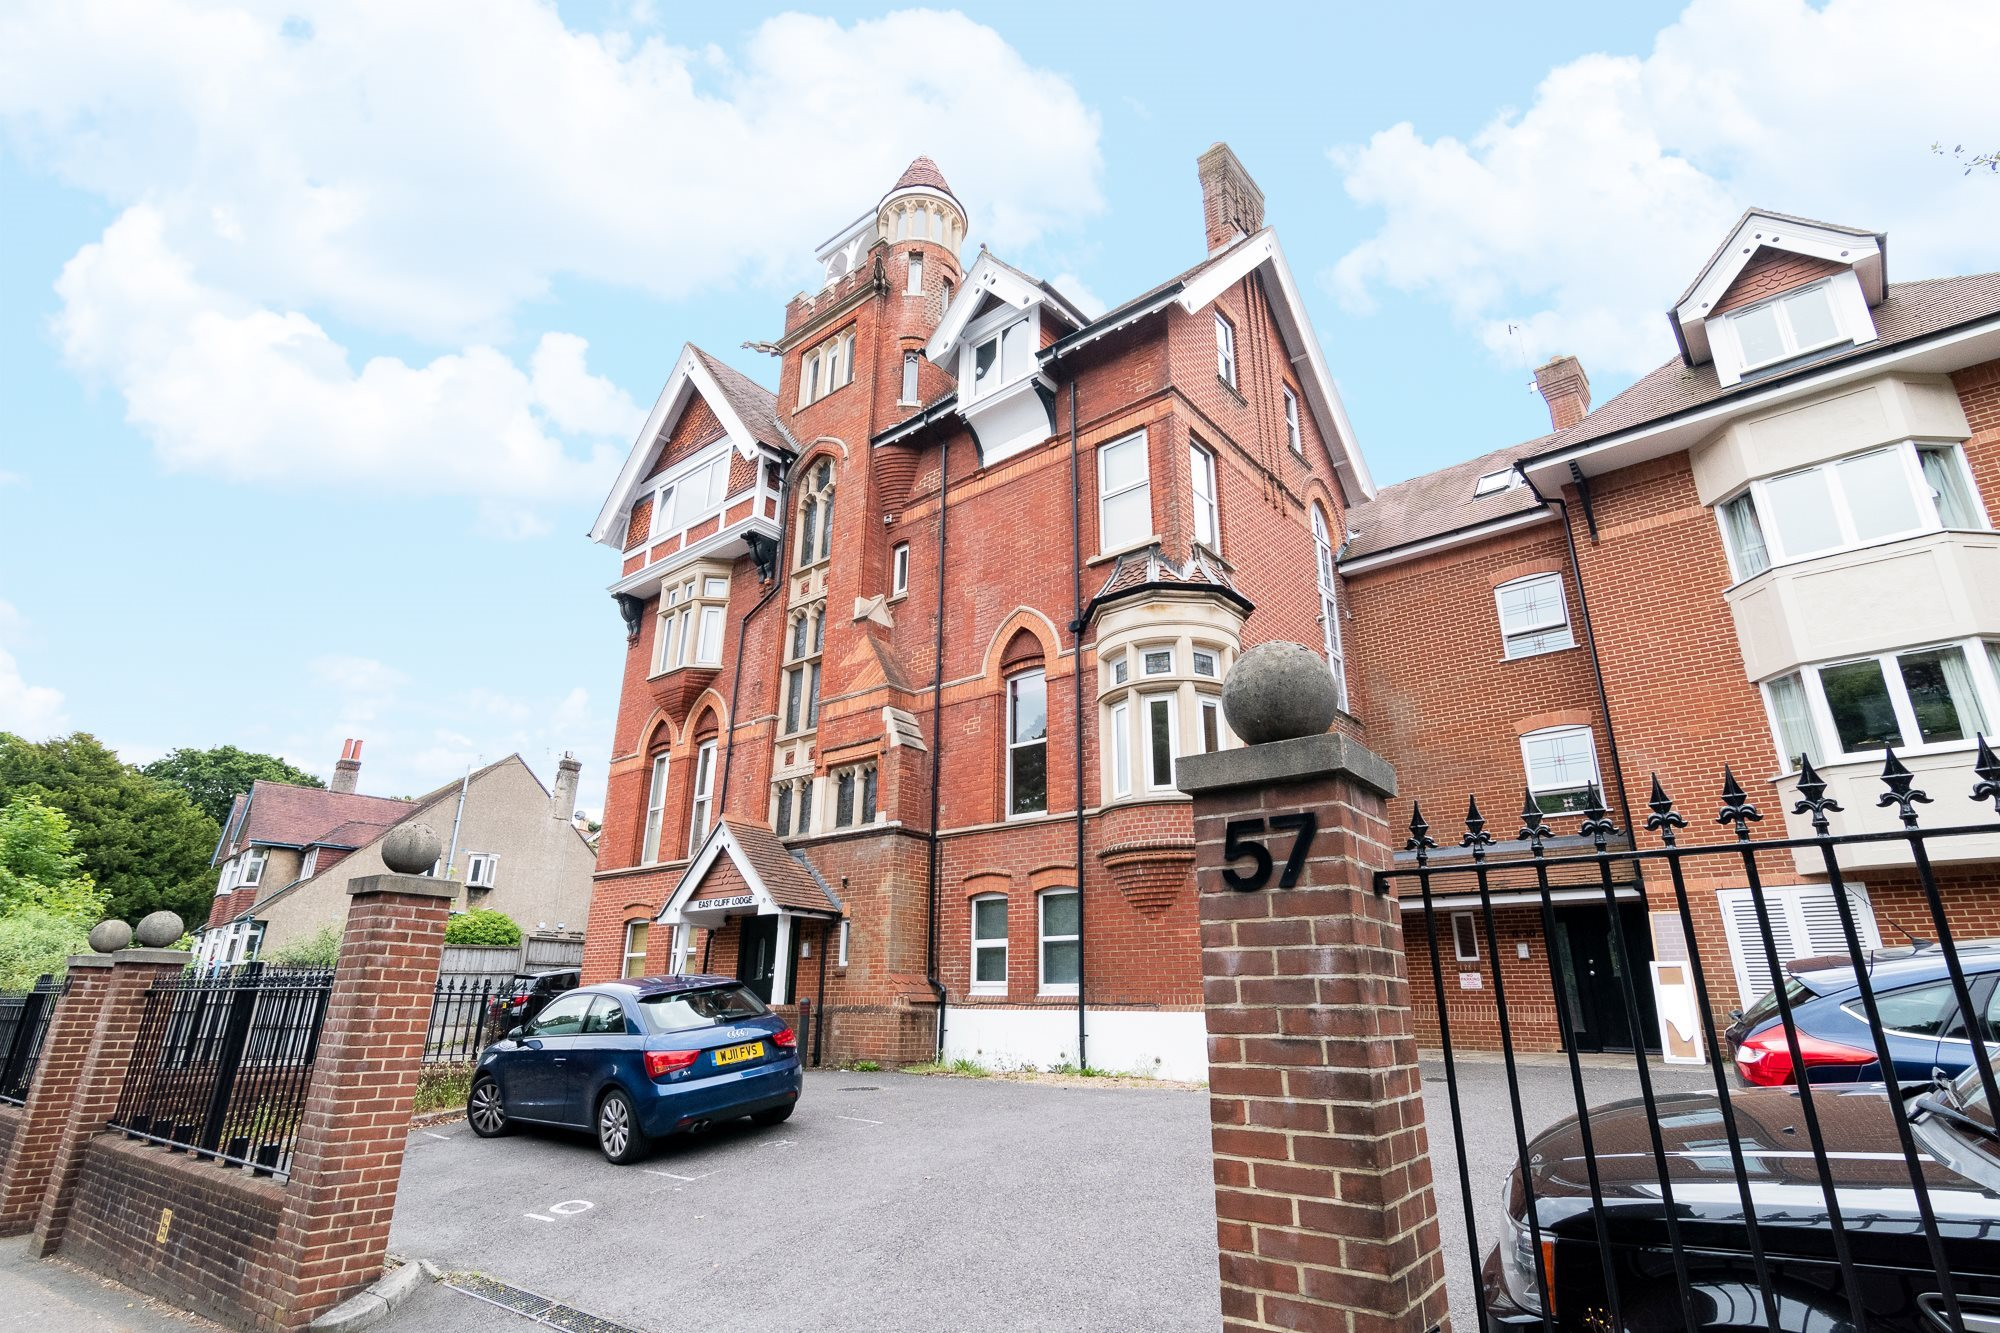 INVESTORS! Christopher Shaw are delighted to offer this beautifully presented split level apartment within easy access of Bournemouth town centre and beaches.Currently rented at £950pcm, and set in a block full of character and history this flat is well laid out offering a good amount of space. It also comes with one allocated parking space.